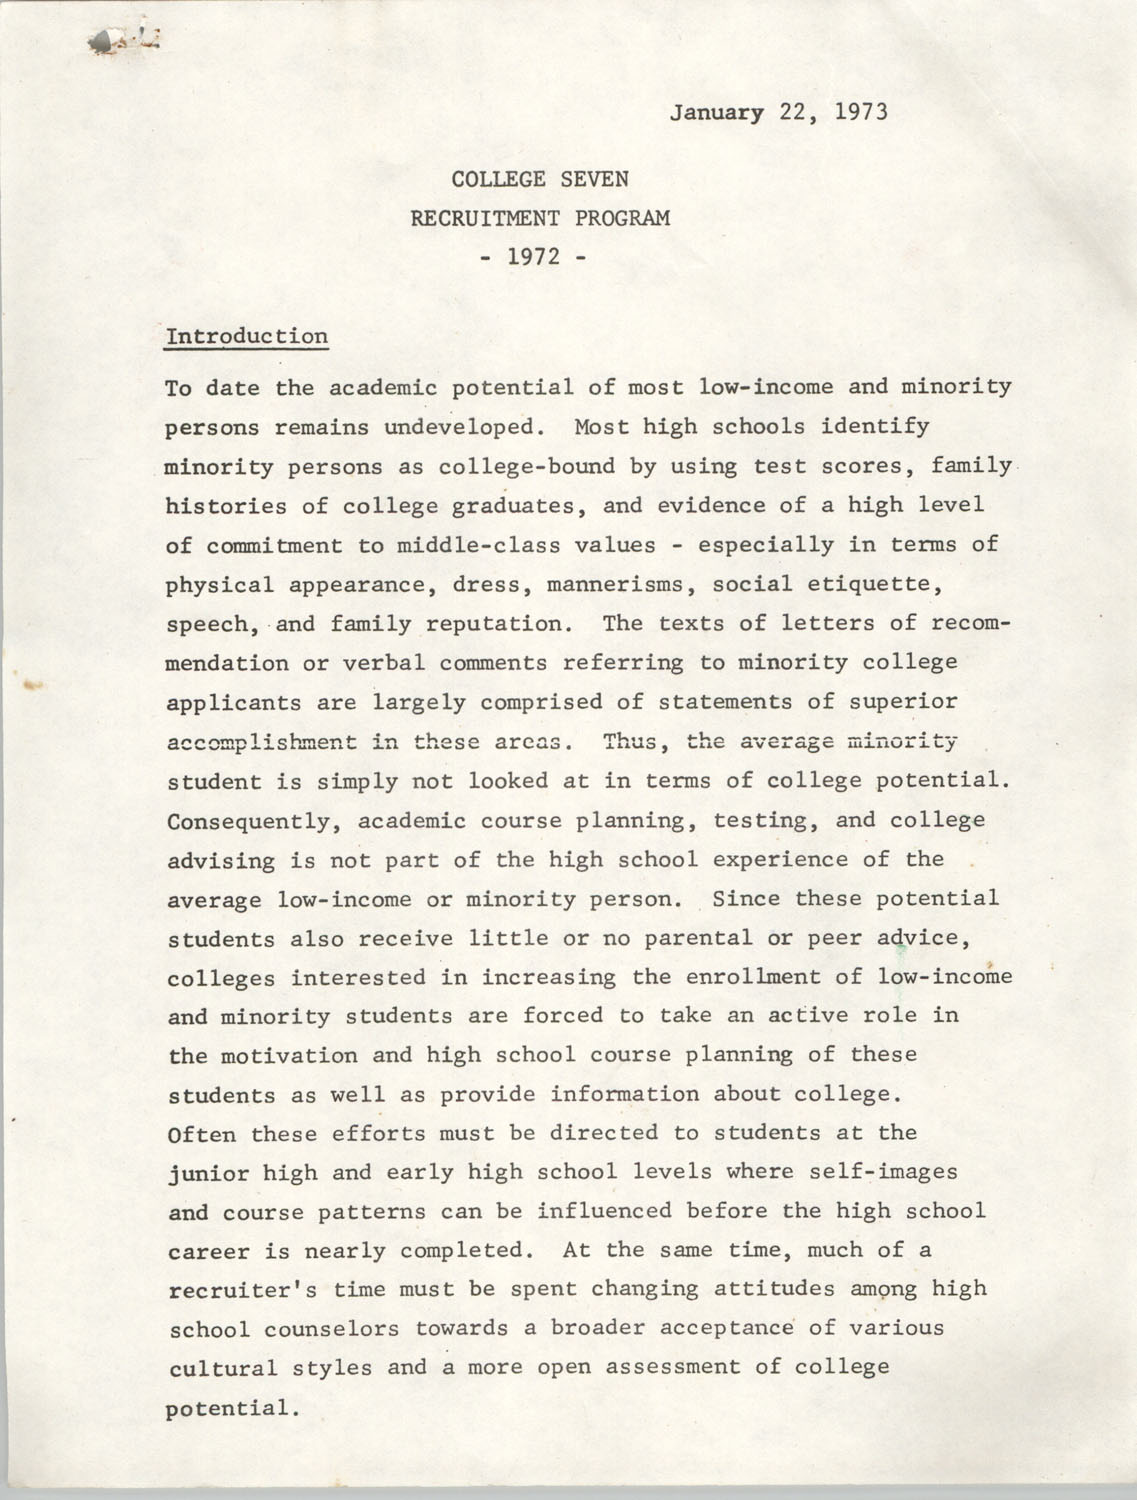 College Seven Report, Recruitment Program 1972